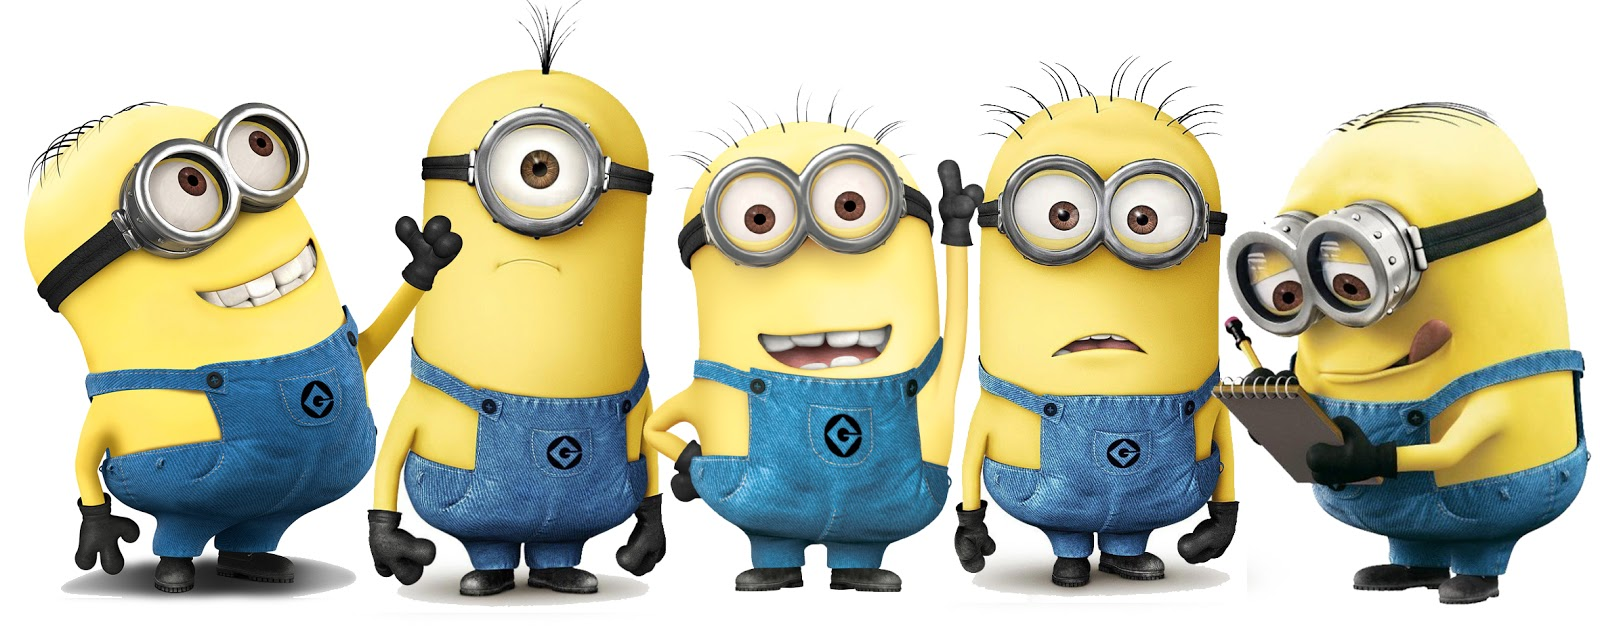 Suficiente Minions - Cine - Films & series CC68